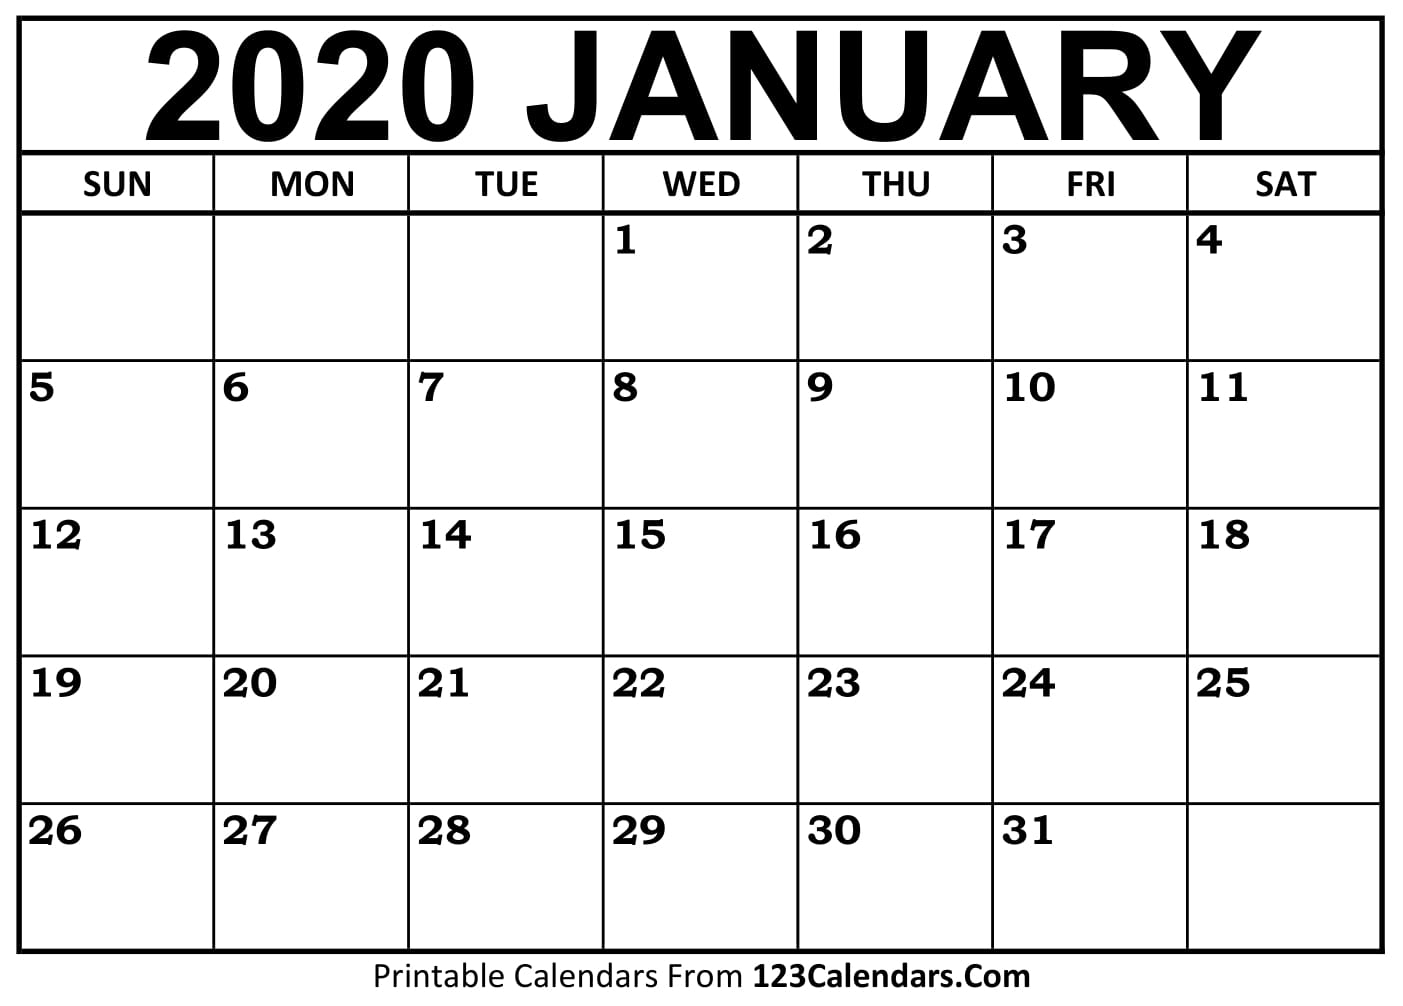 January 2020 Printable Calendar | 123Calendars regarding 123 Calendars January 2020